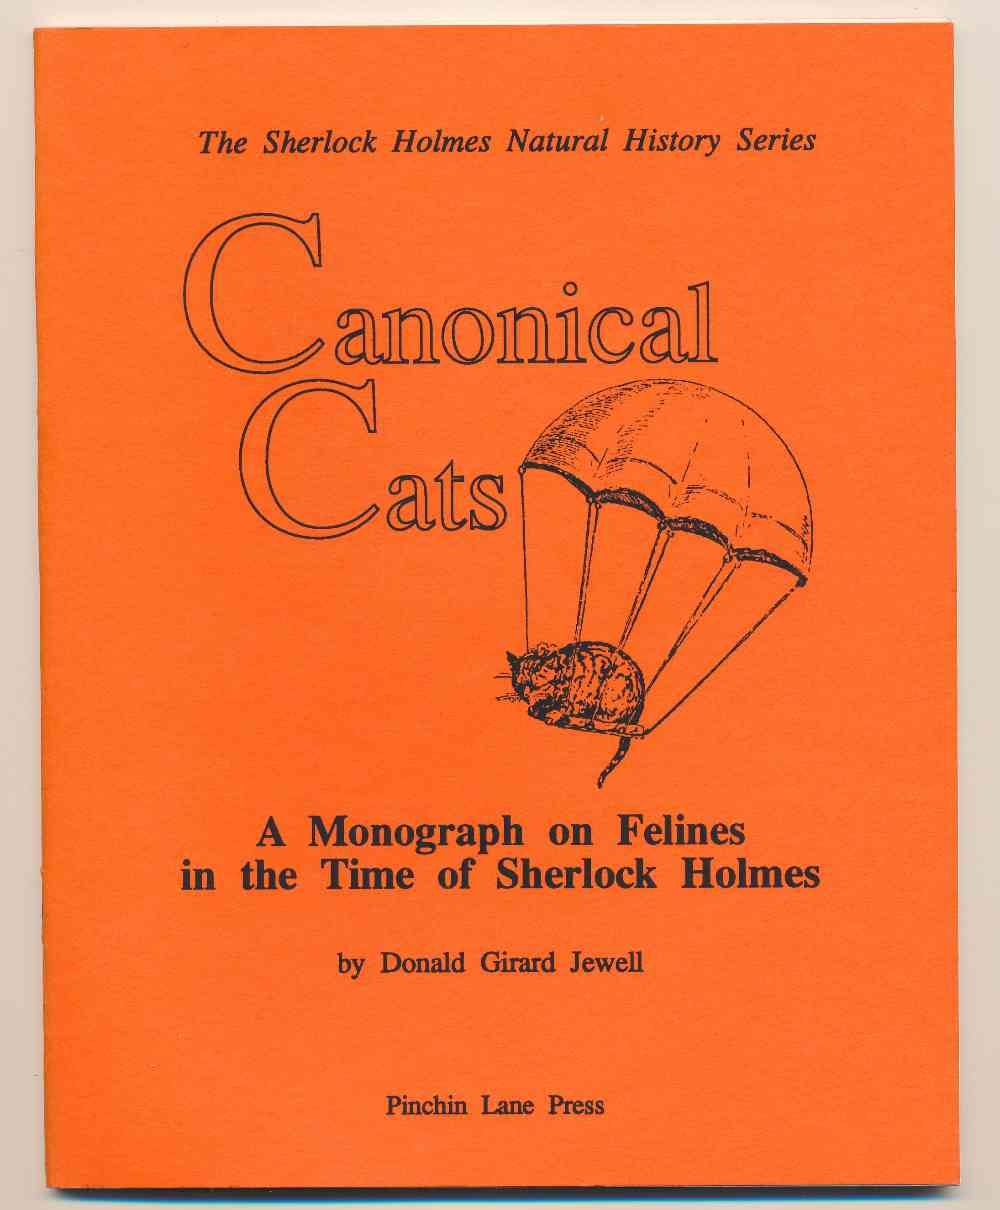 Canonical cats : a monograph on felines in the time of Sherlock Holmes